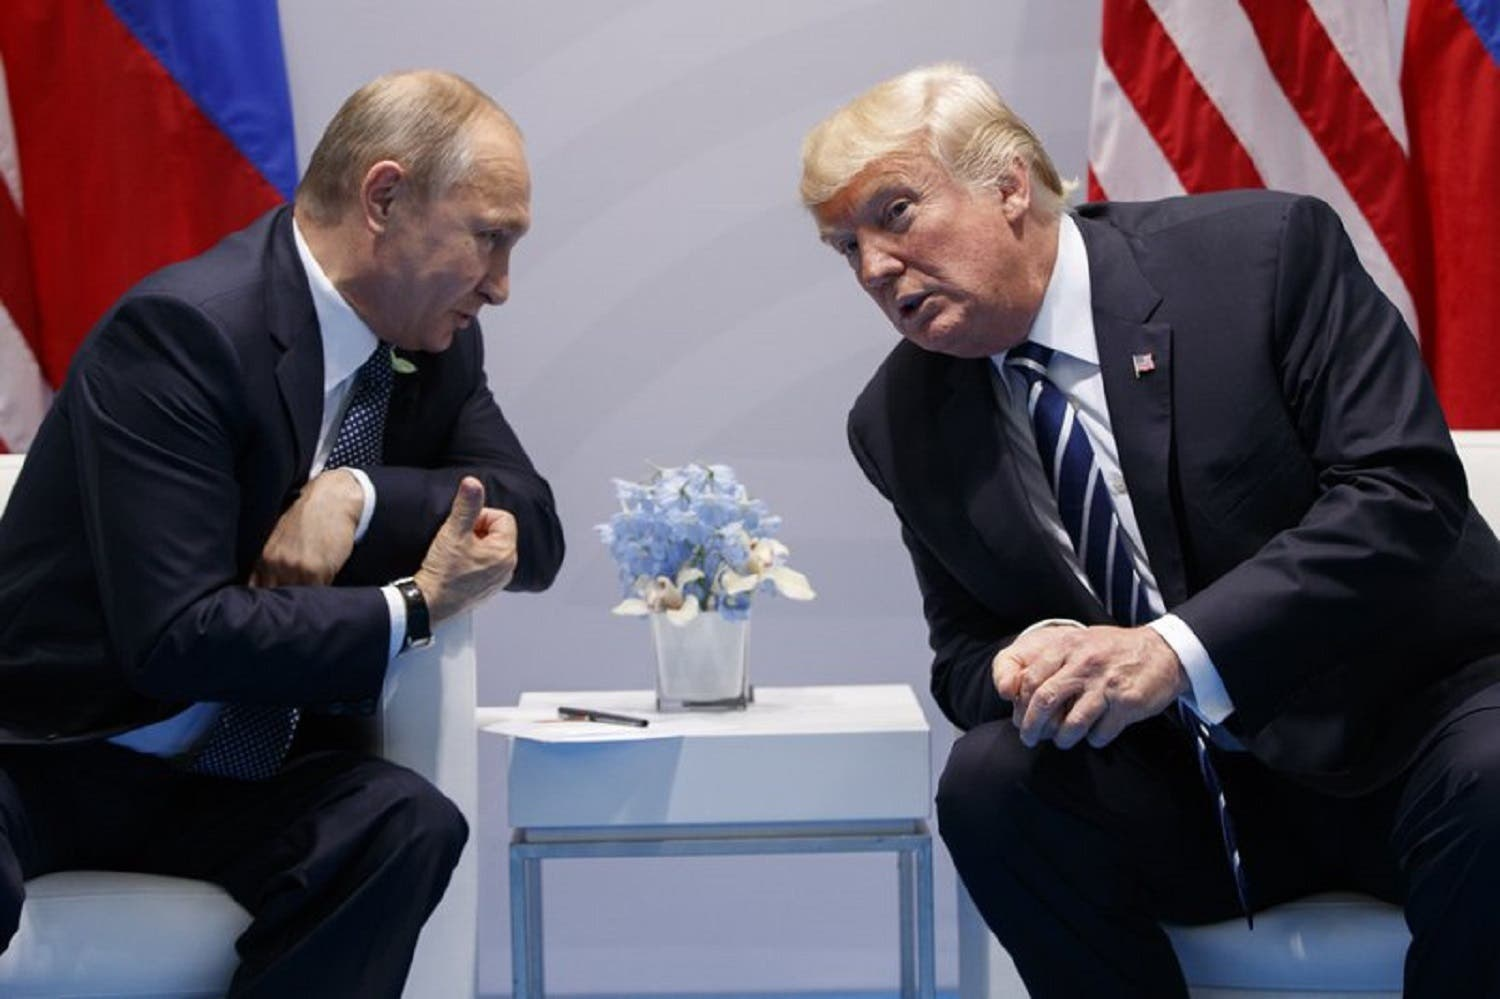 us President Donald Trump speaks during a meeting with Russian President Vladimir Putin at the G20 Summit in Hamburg on July 7, 2017. (AP)